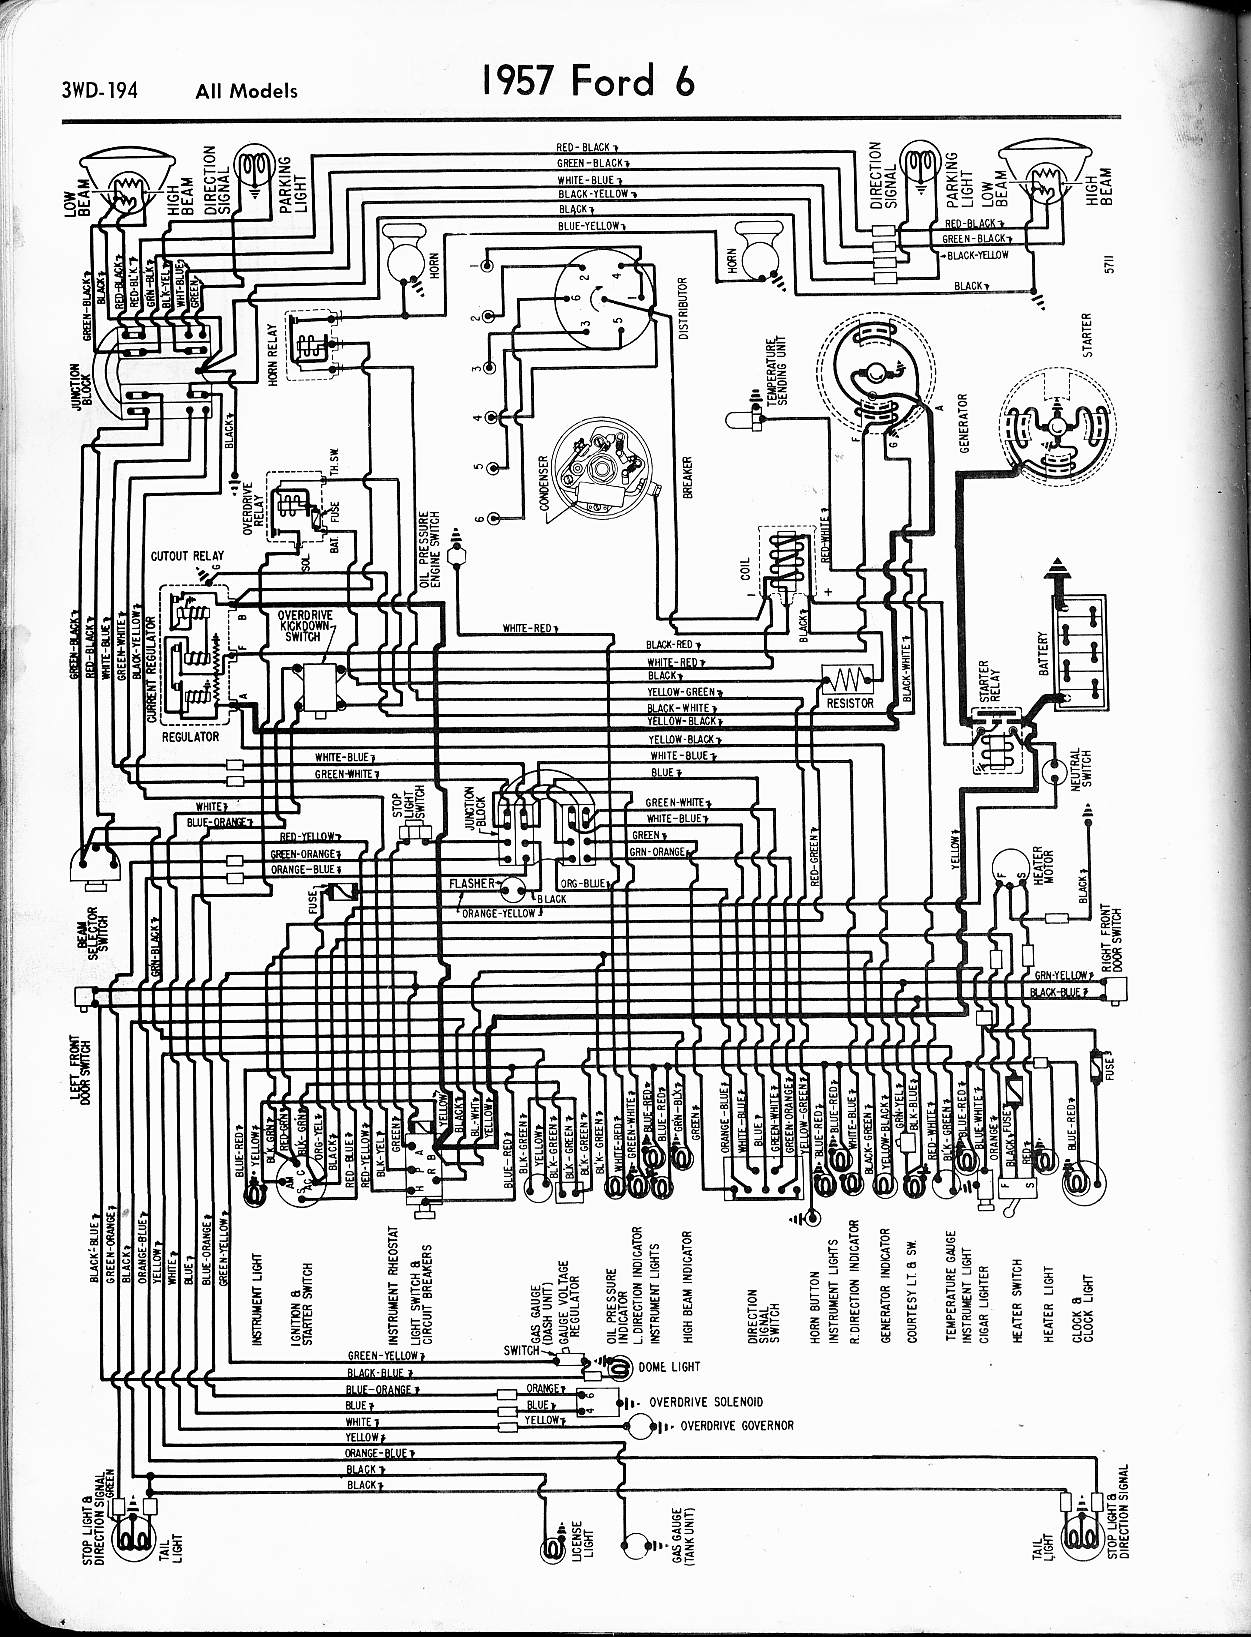 57 65 Ford Wiring Diagrams Starter Solenoid Diagram With Attached 1957 6 Cyl All Models